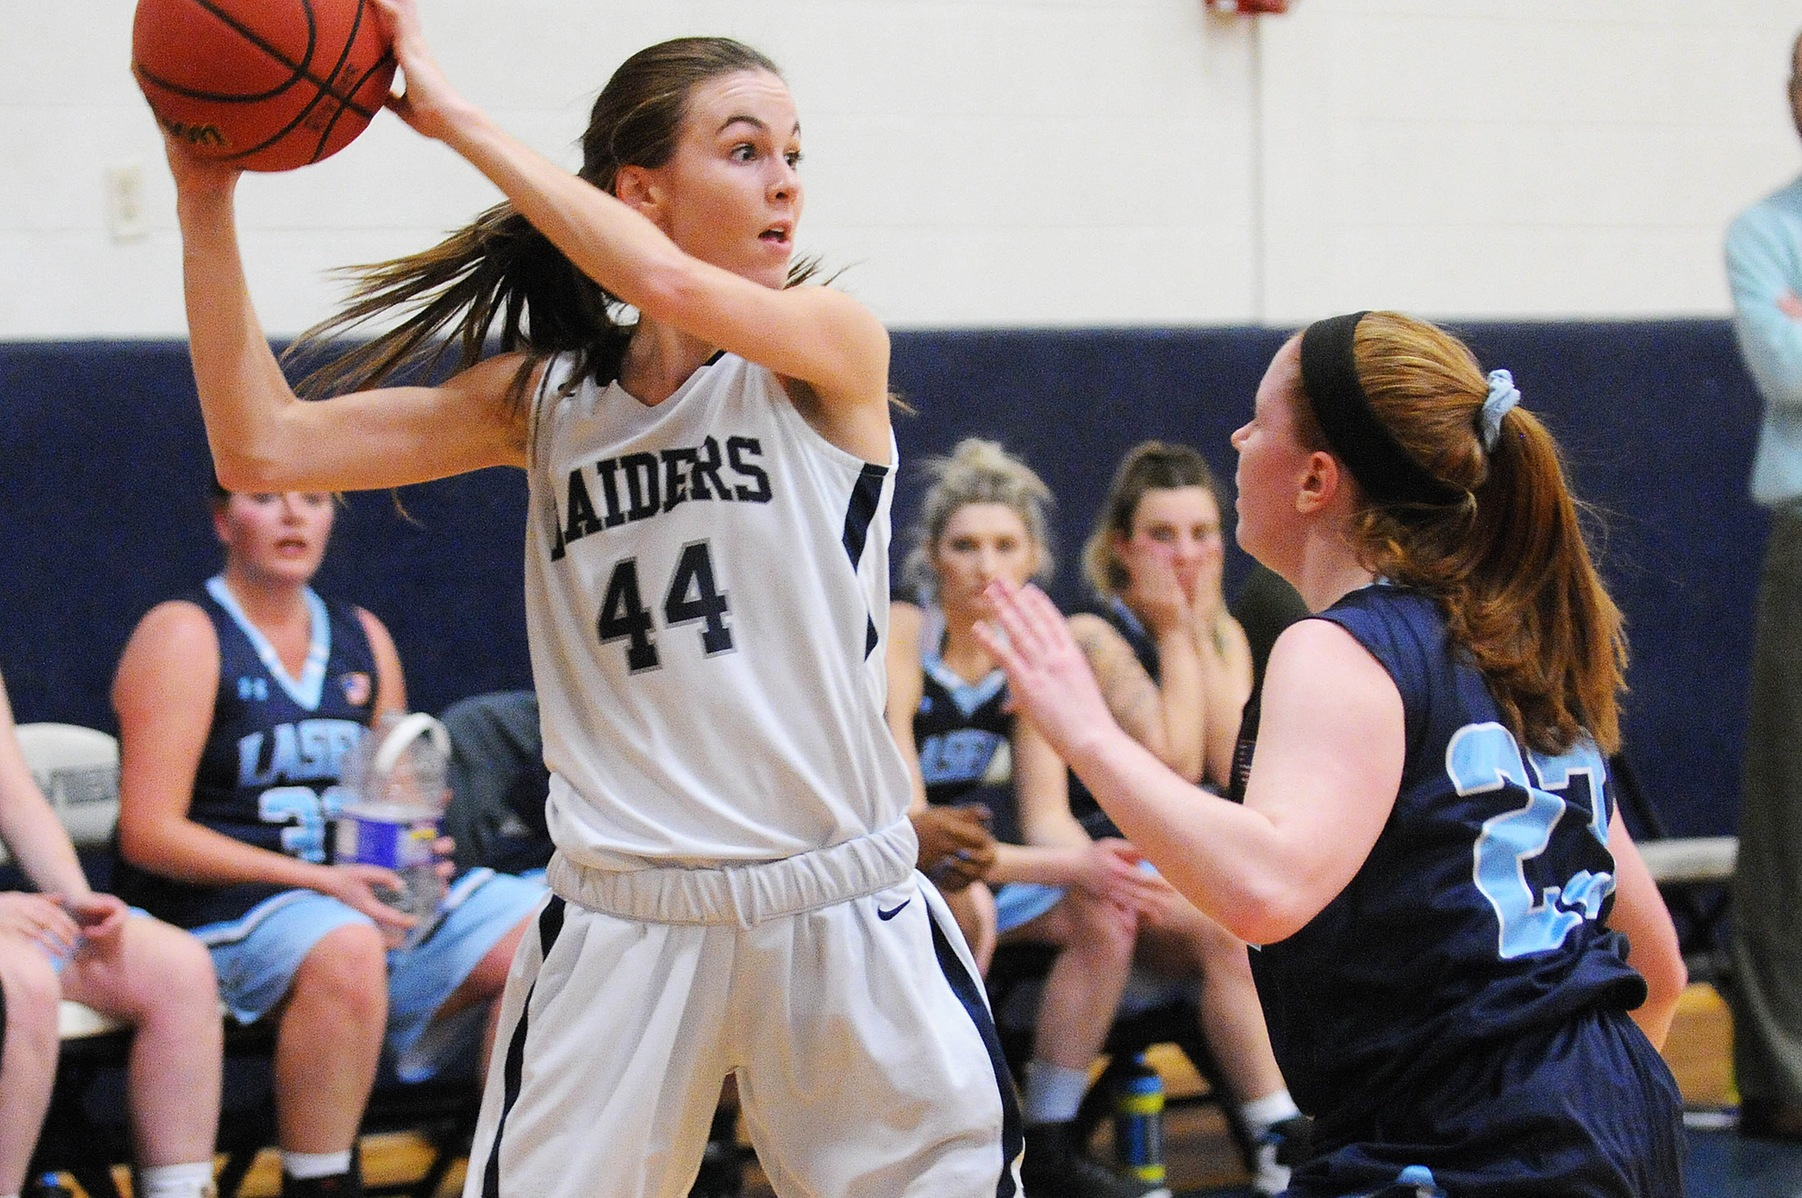 Women's Basketball: Raiders top Lasell, 56-52